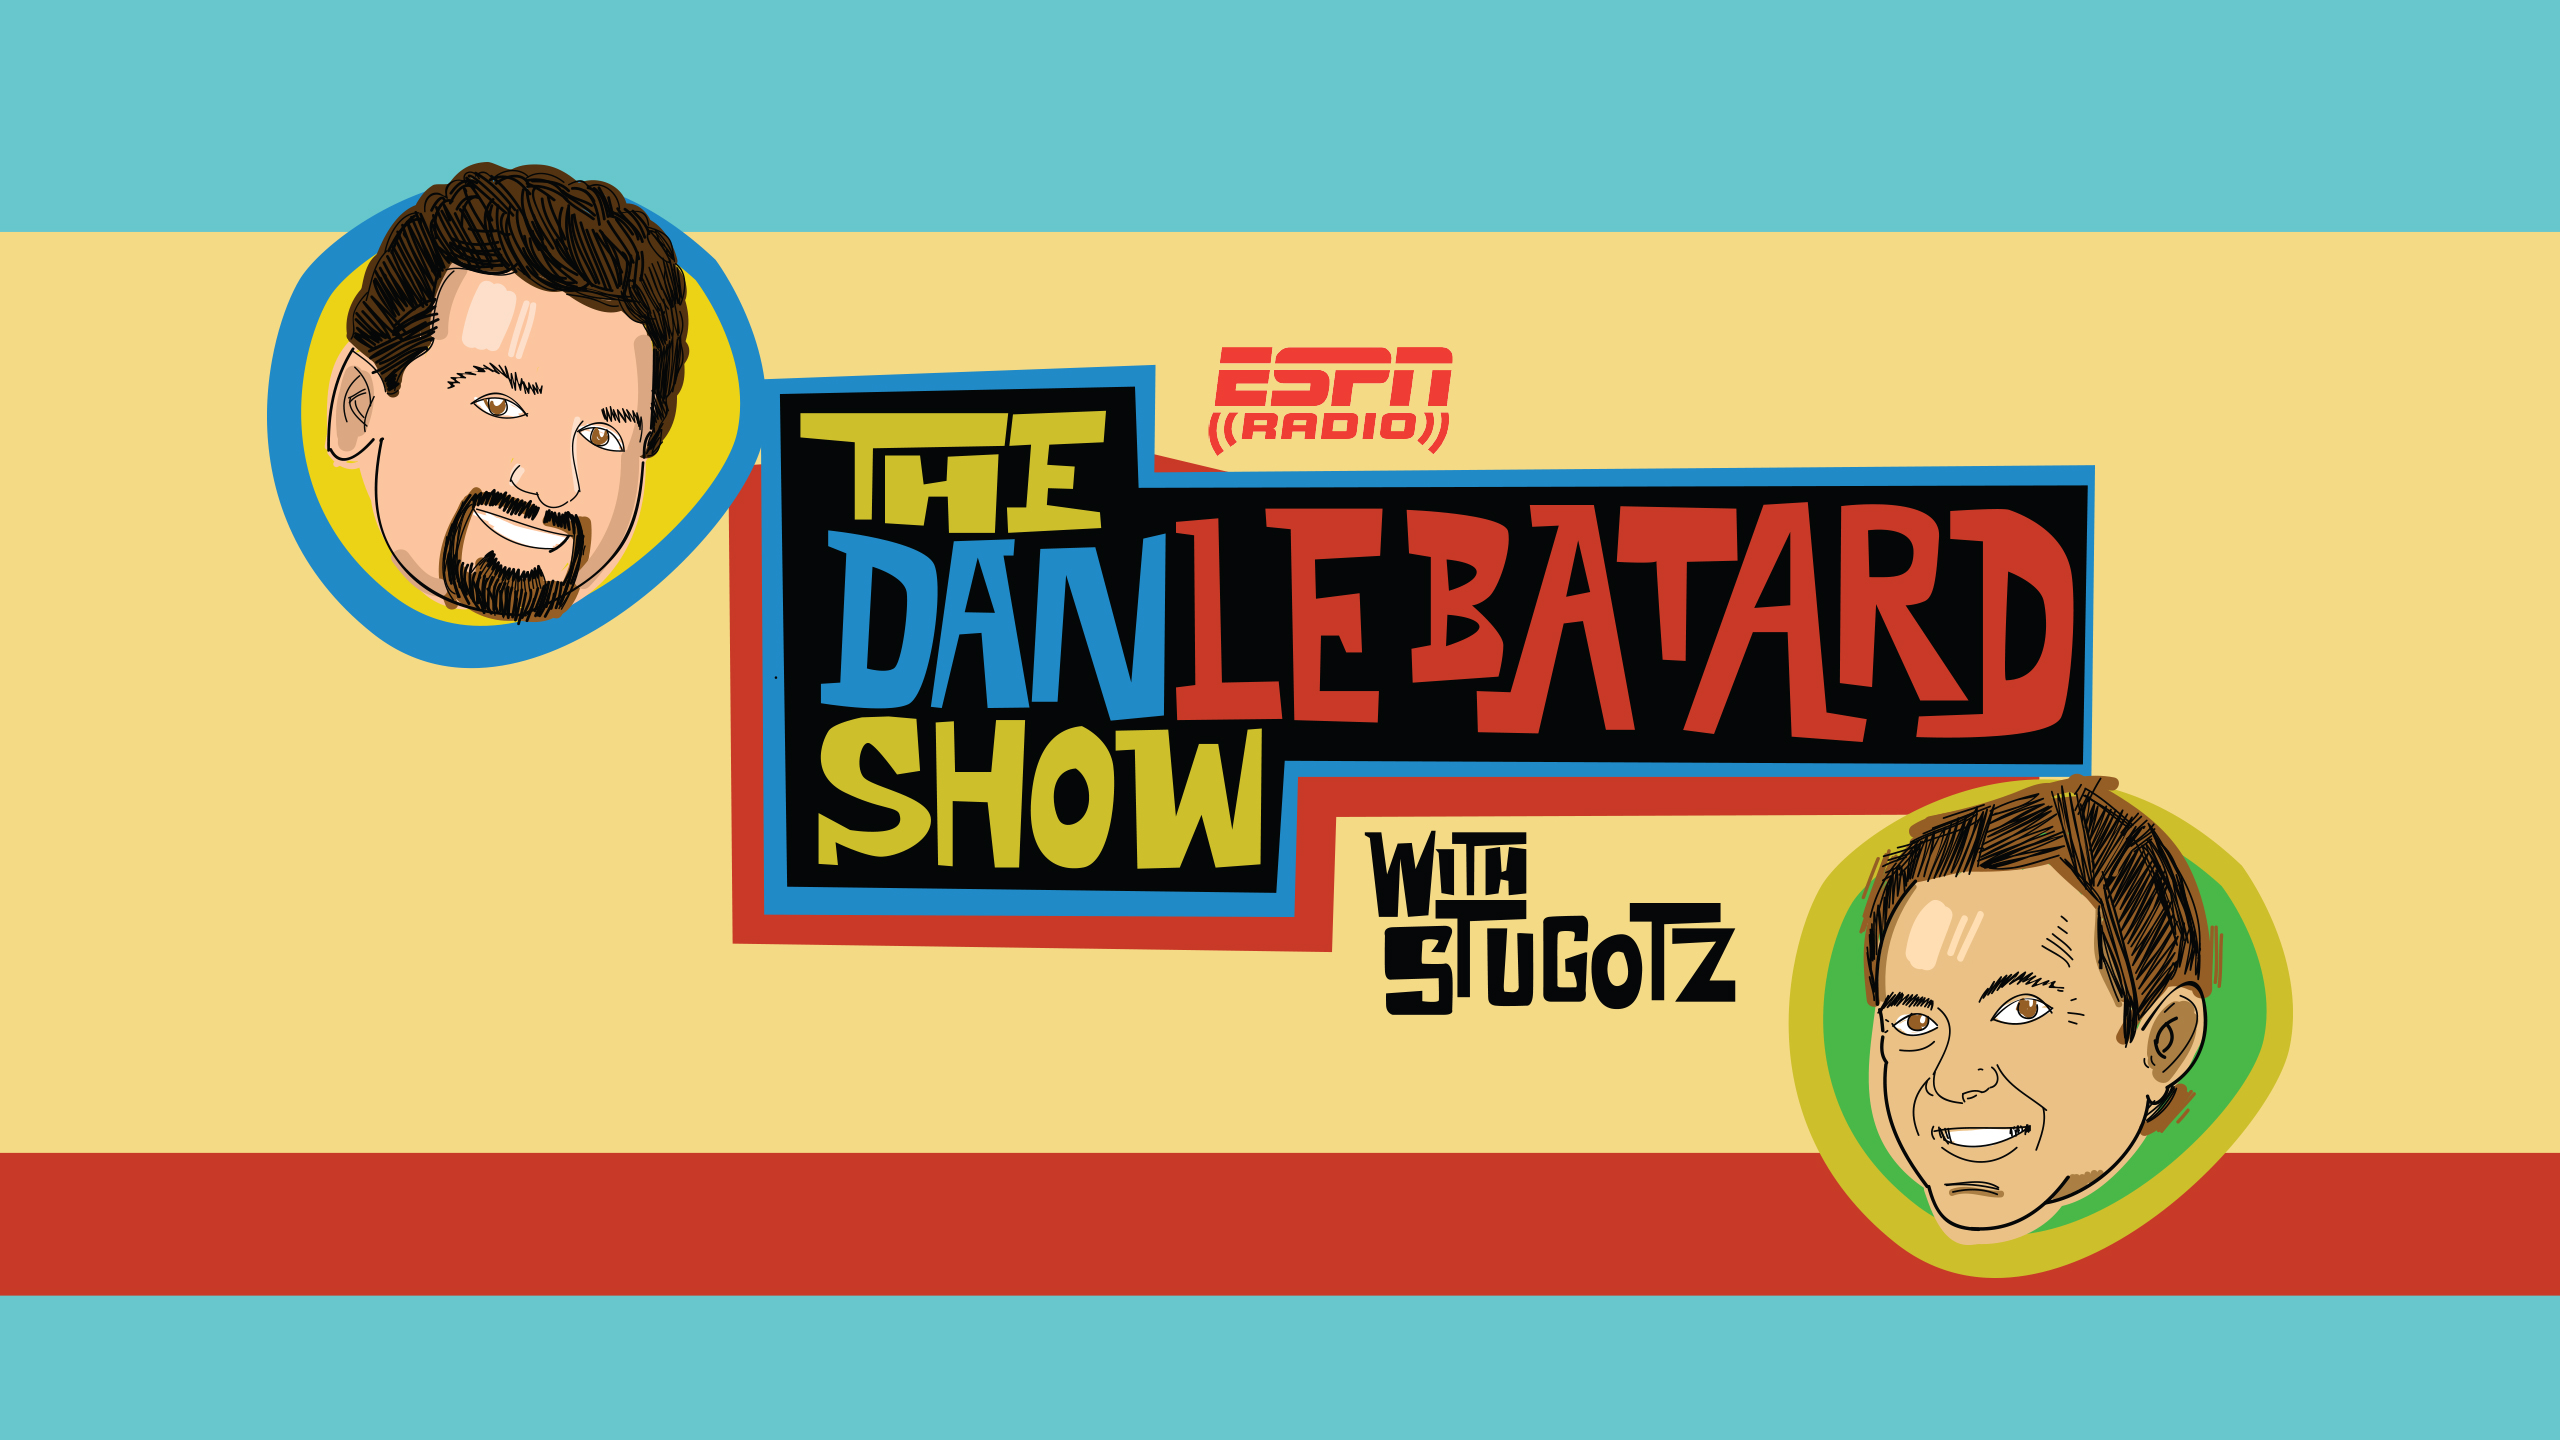 Tue, 12/18 - The Dan Le Batard Show with Stugotz Presented by Progressive